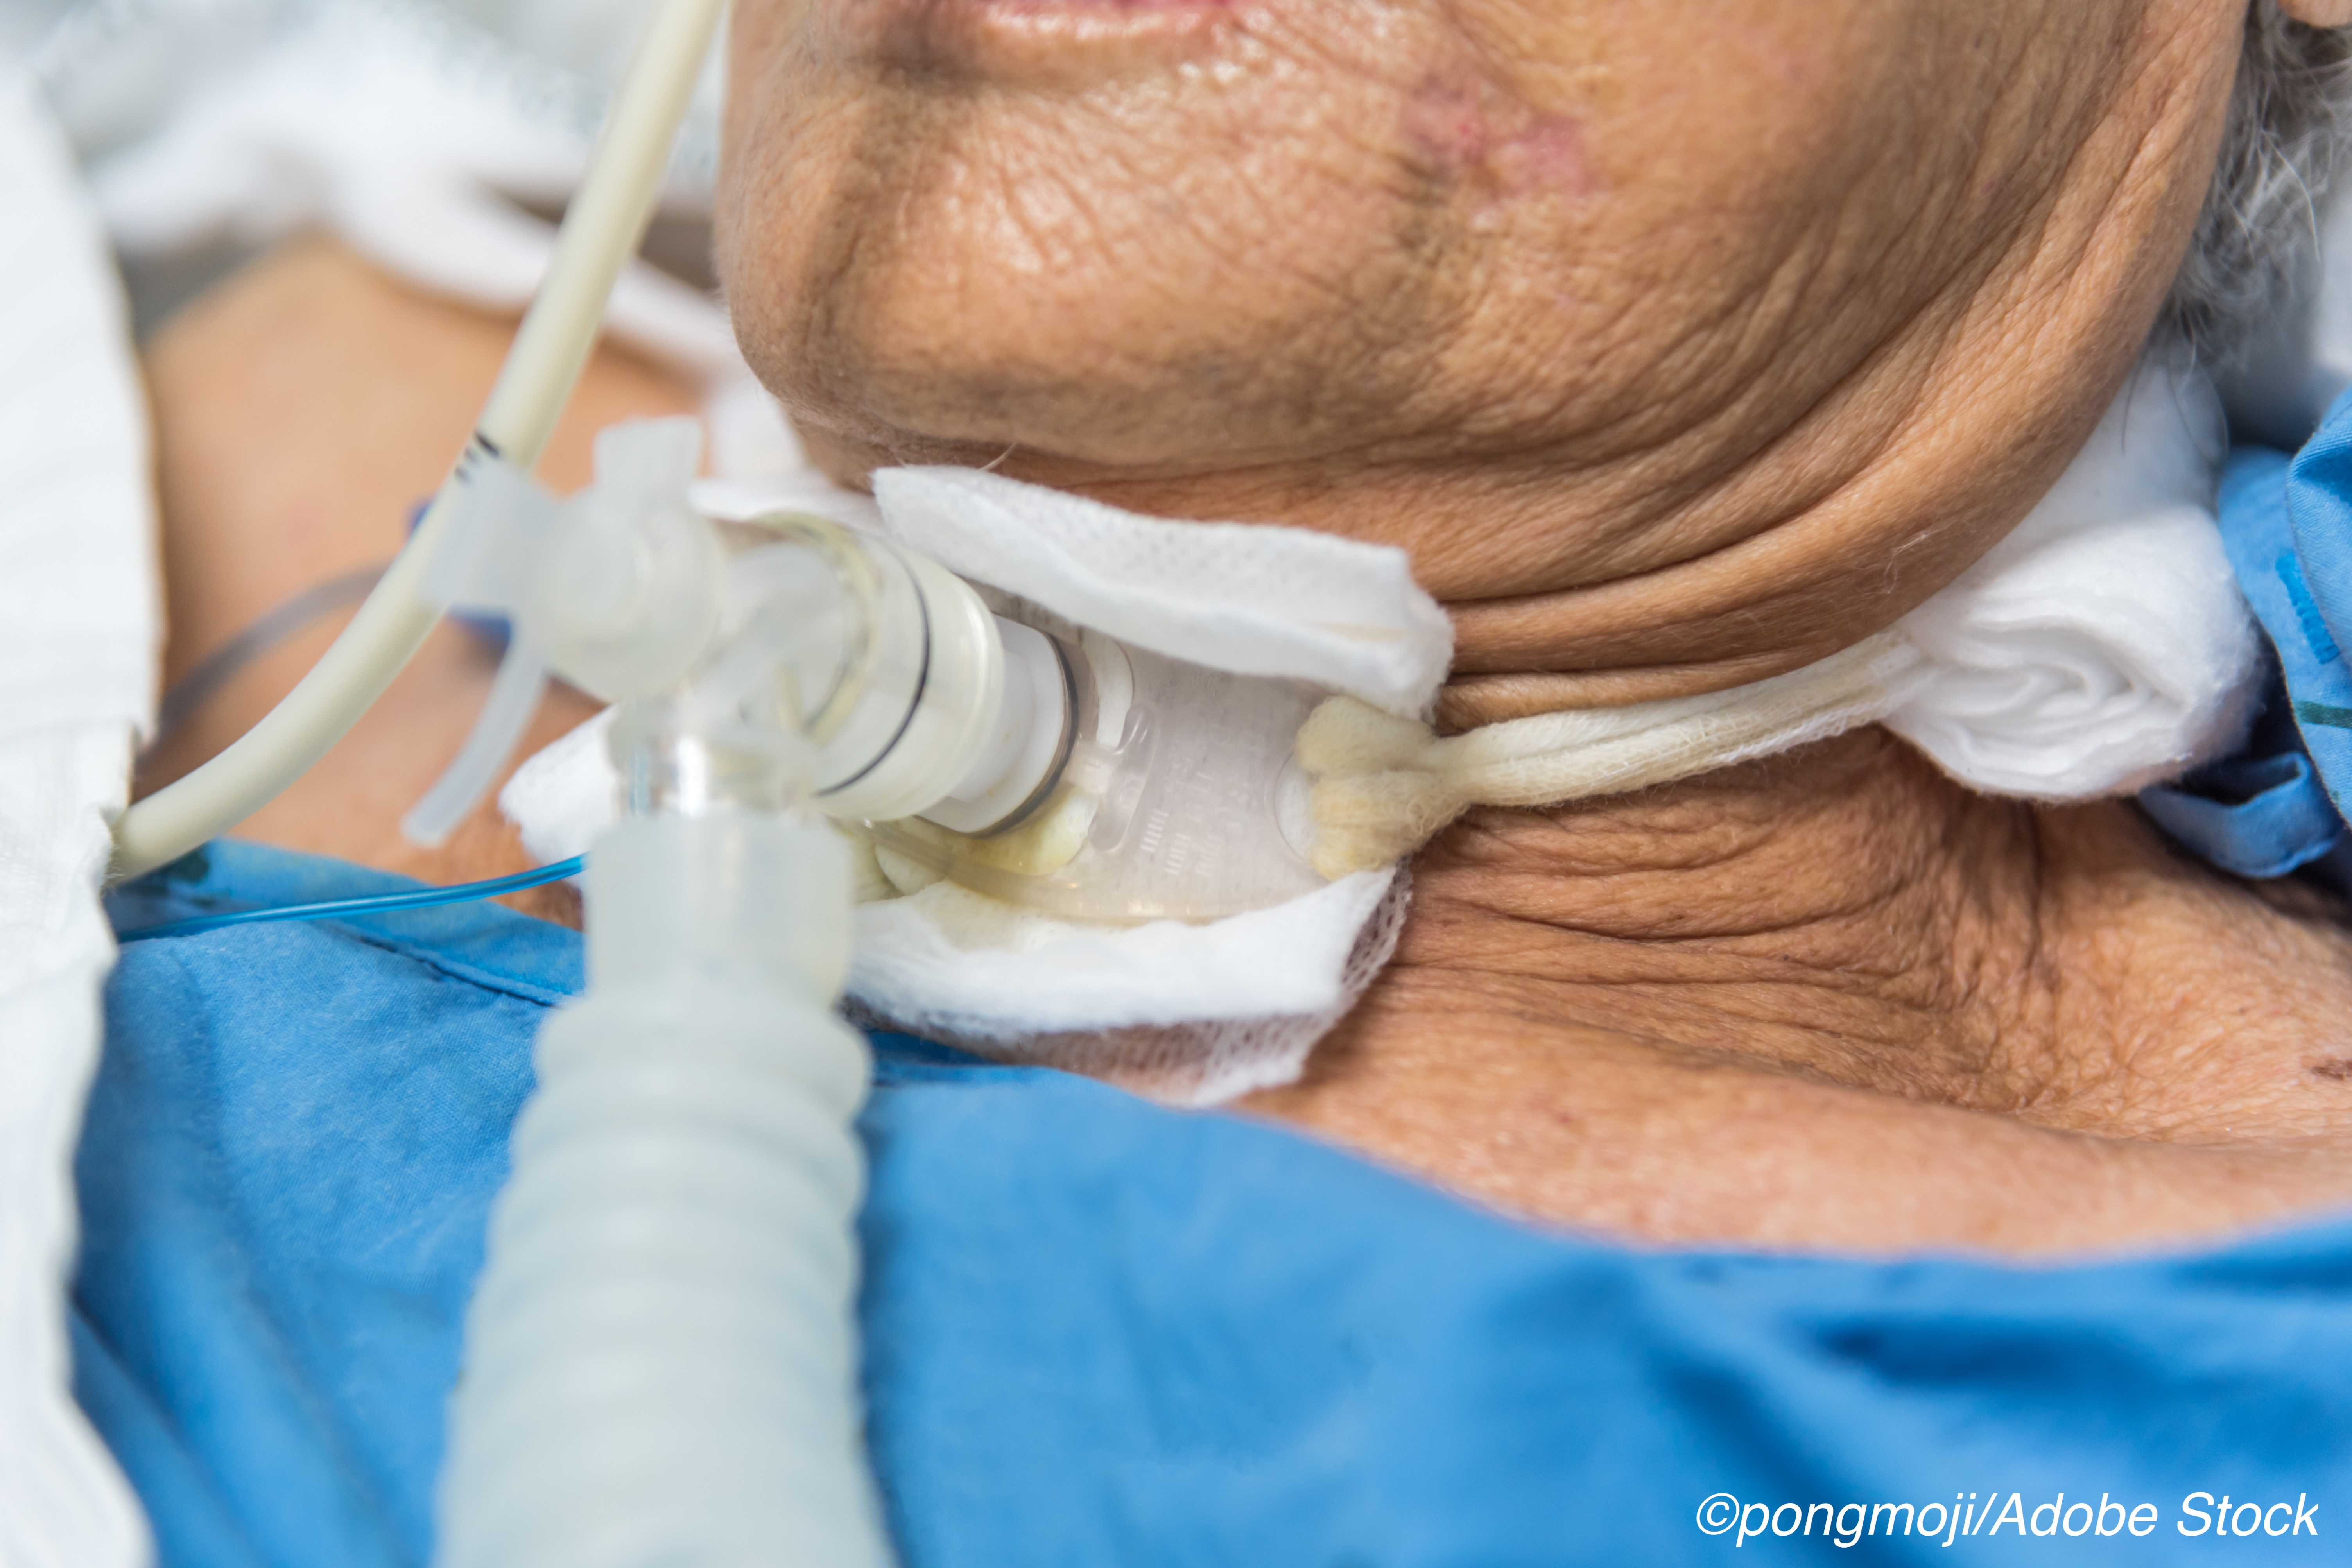 Suctioning-Guided Strategy for Removal Reduces Trach Tube Time